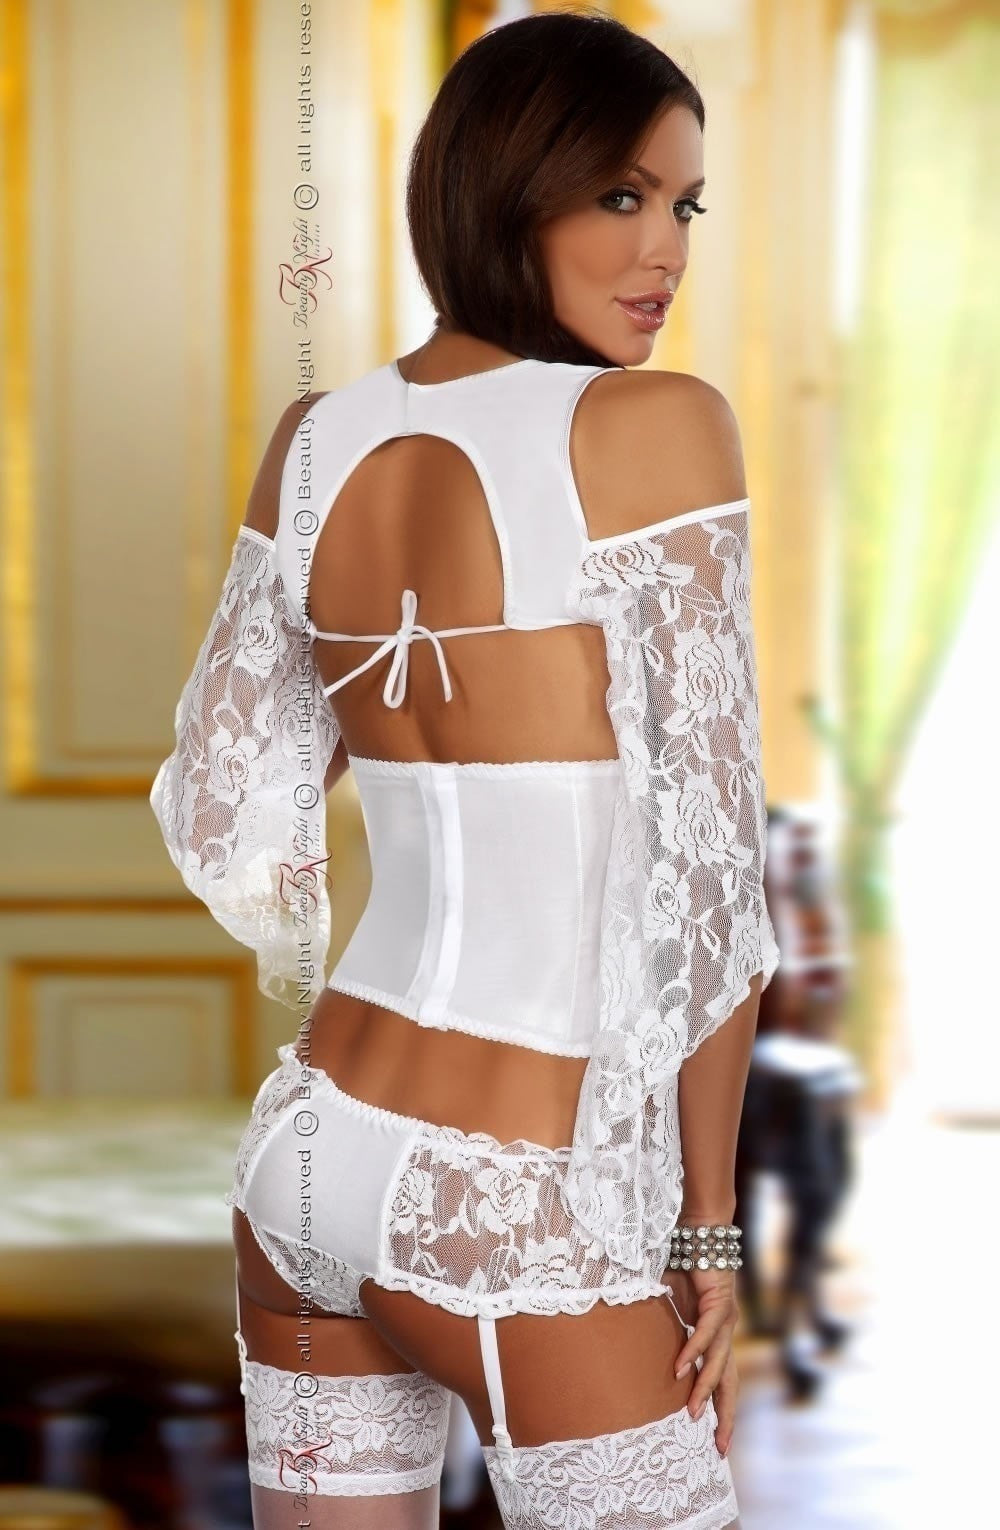 Beauty Night Priscilla Set (White) - Lingerie Sets - Beauty Night - Charm and Lace Boutique